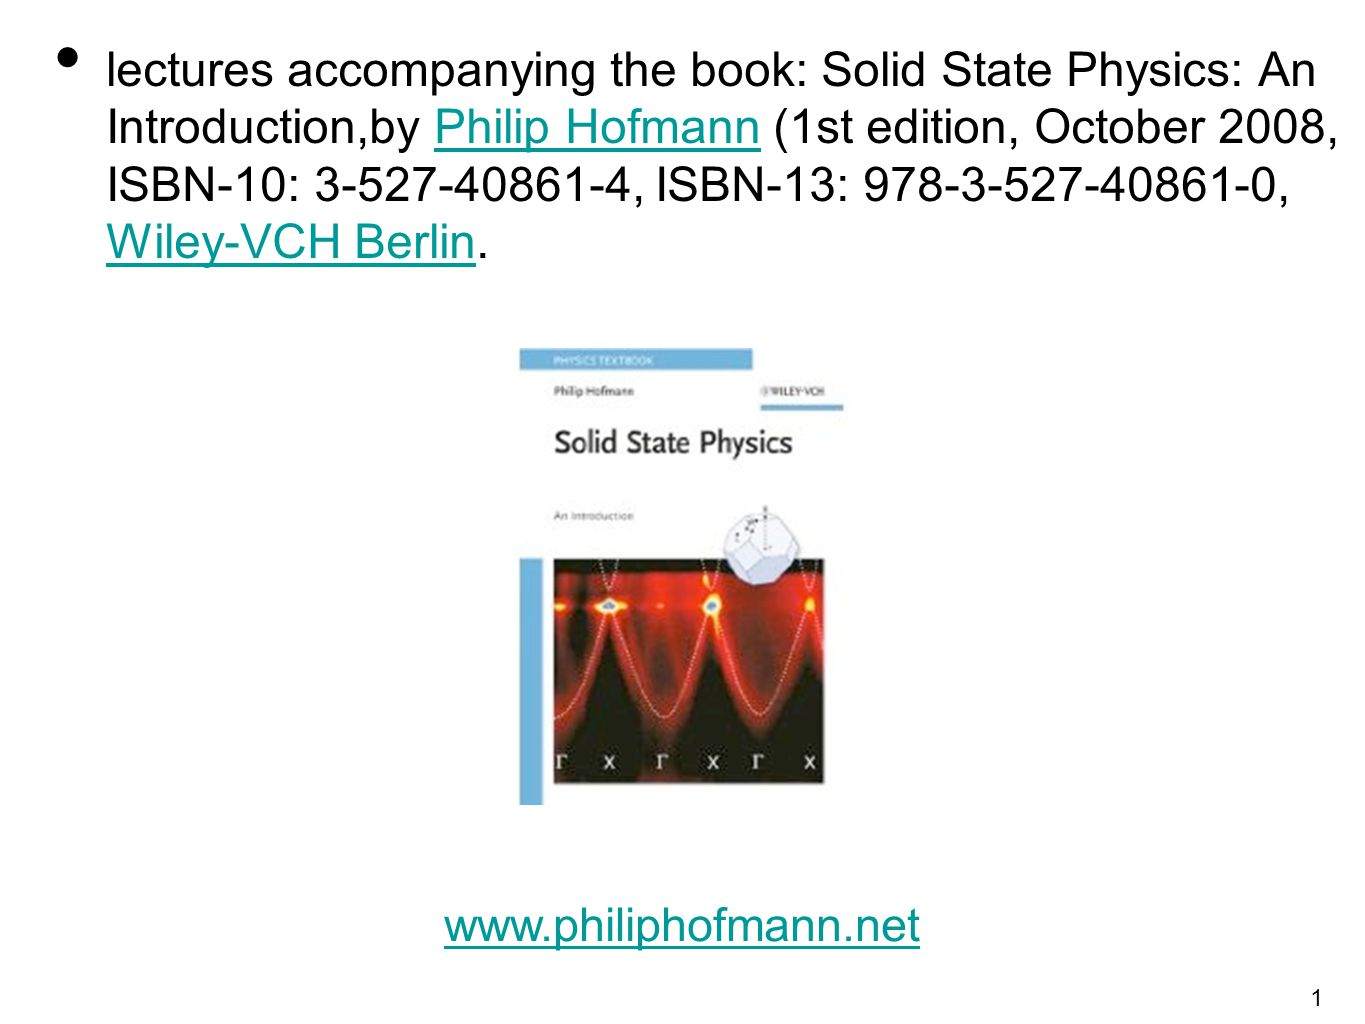 1 lectures accompanying the book: Solid State Physics: An Introduction,by Philip Hofmann (1st edition, October 2008, ISBN-10: 3-527-40861-4, ISBN-13: 978-3-527-40861-0, Wiley-VCH Berlin.Philip Hofmann Wiley-VCH Berlin www.philiphofmann.net